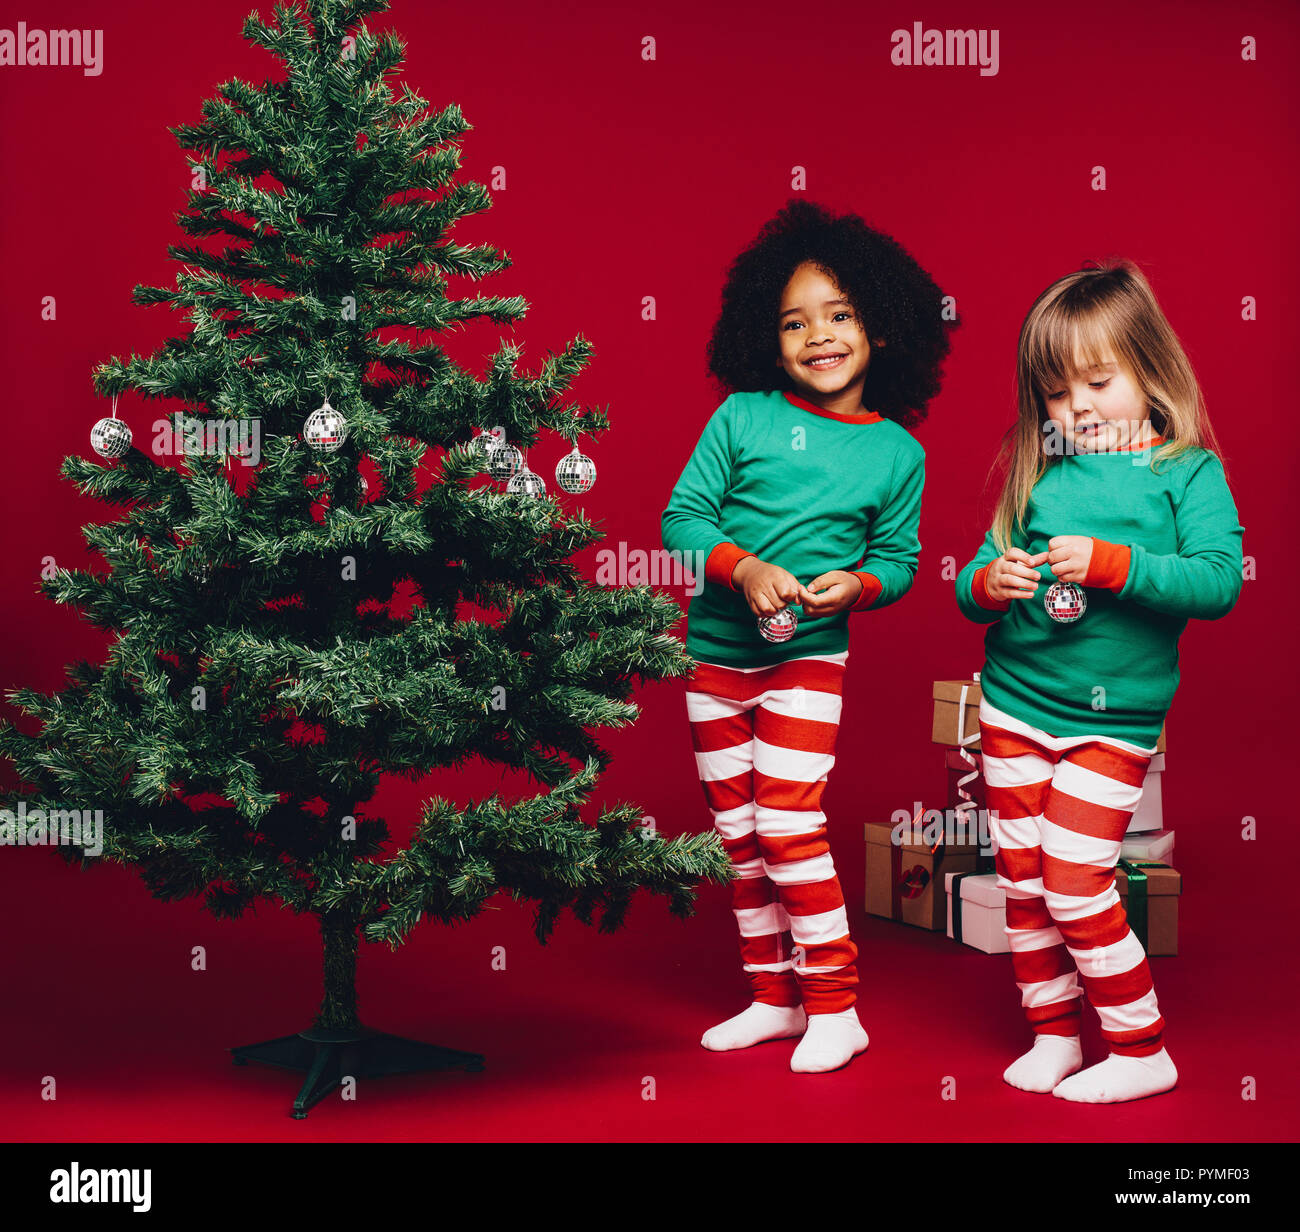 Two Little Girls Standing Beside A Christmas Tree Happy Multi Ethnic Kids Decorating A Christmas Tree Stock Photo Alamy